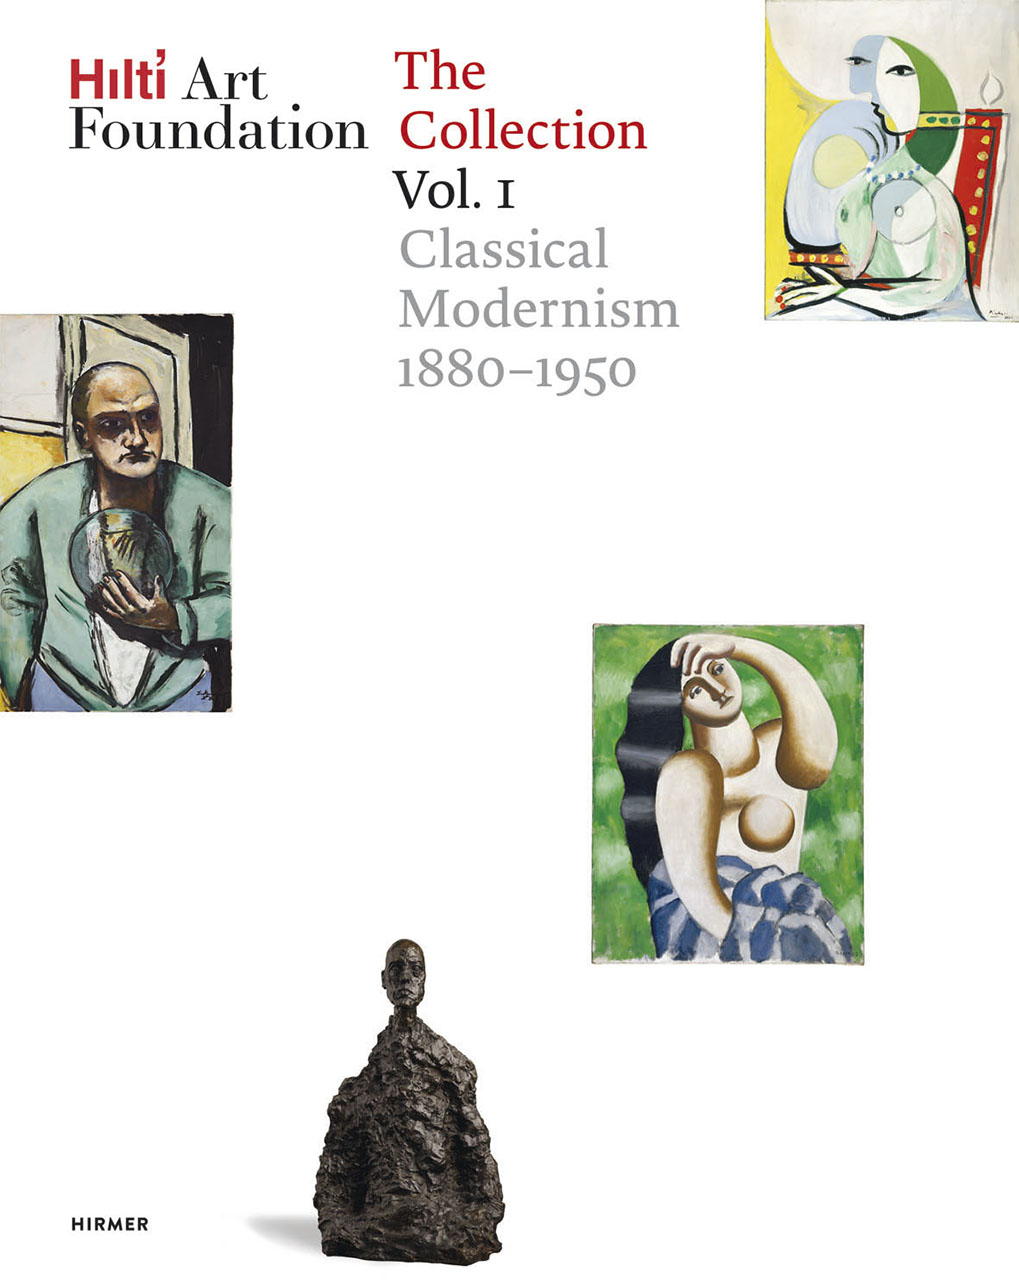 Hilti Art Foundation. The Collection. Vol. I: Classical Modernism. 1880–1950